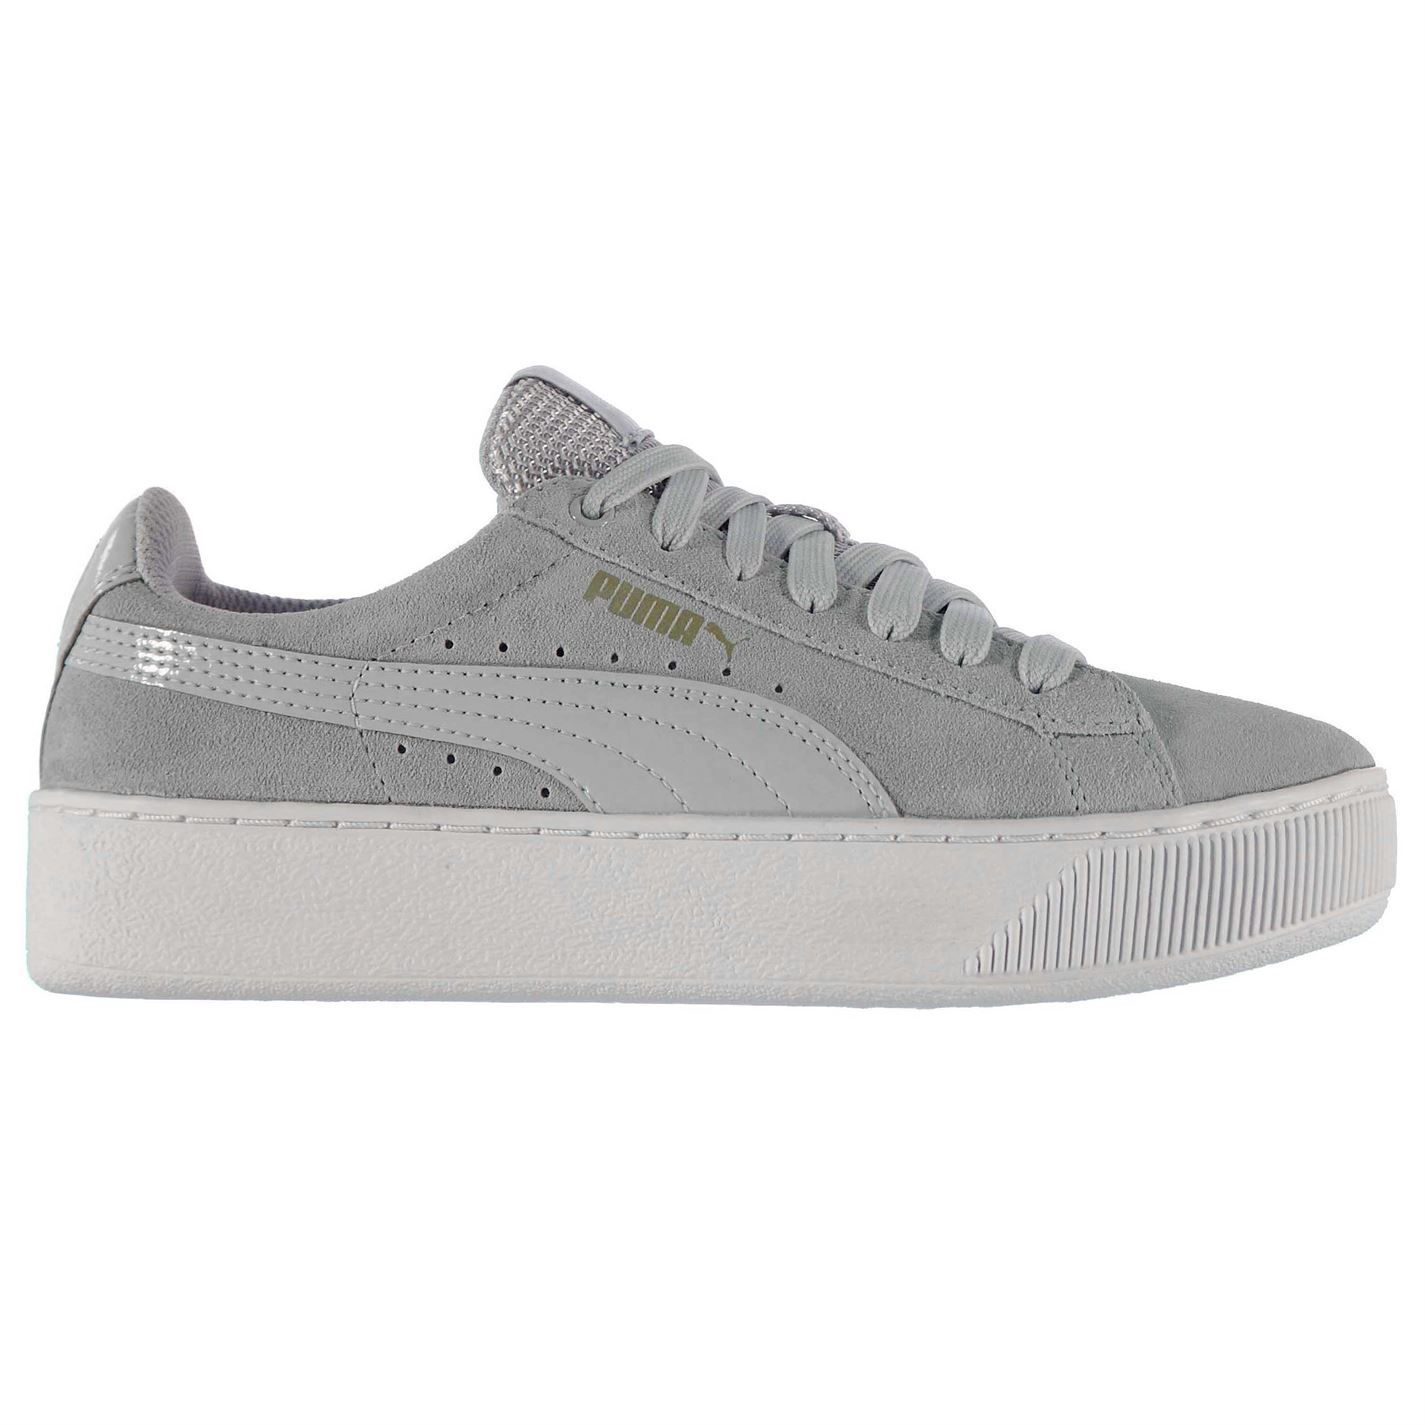 Footwear Fastened Ladies Shoes Platform Ebay Puma Vikky Trainers Laces CUqF01